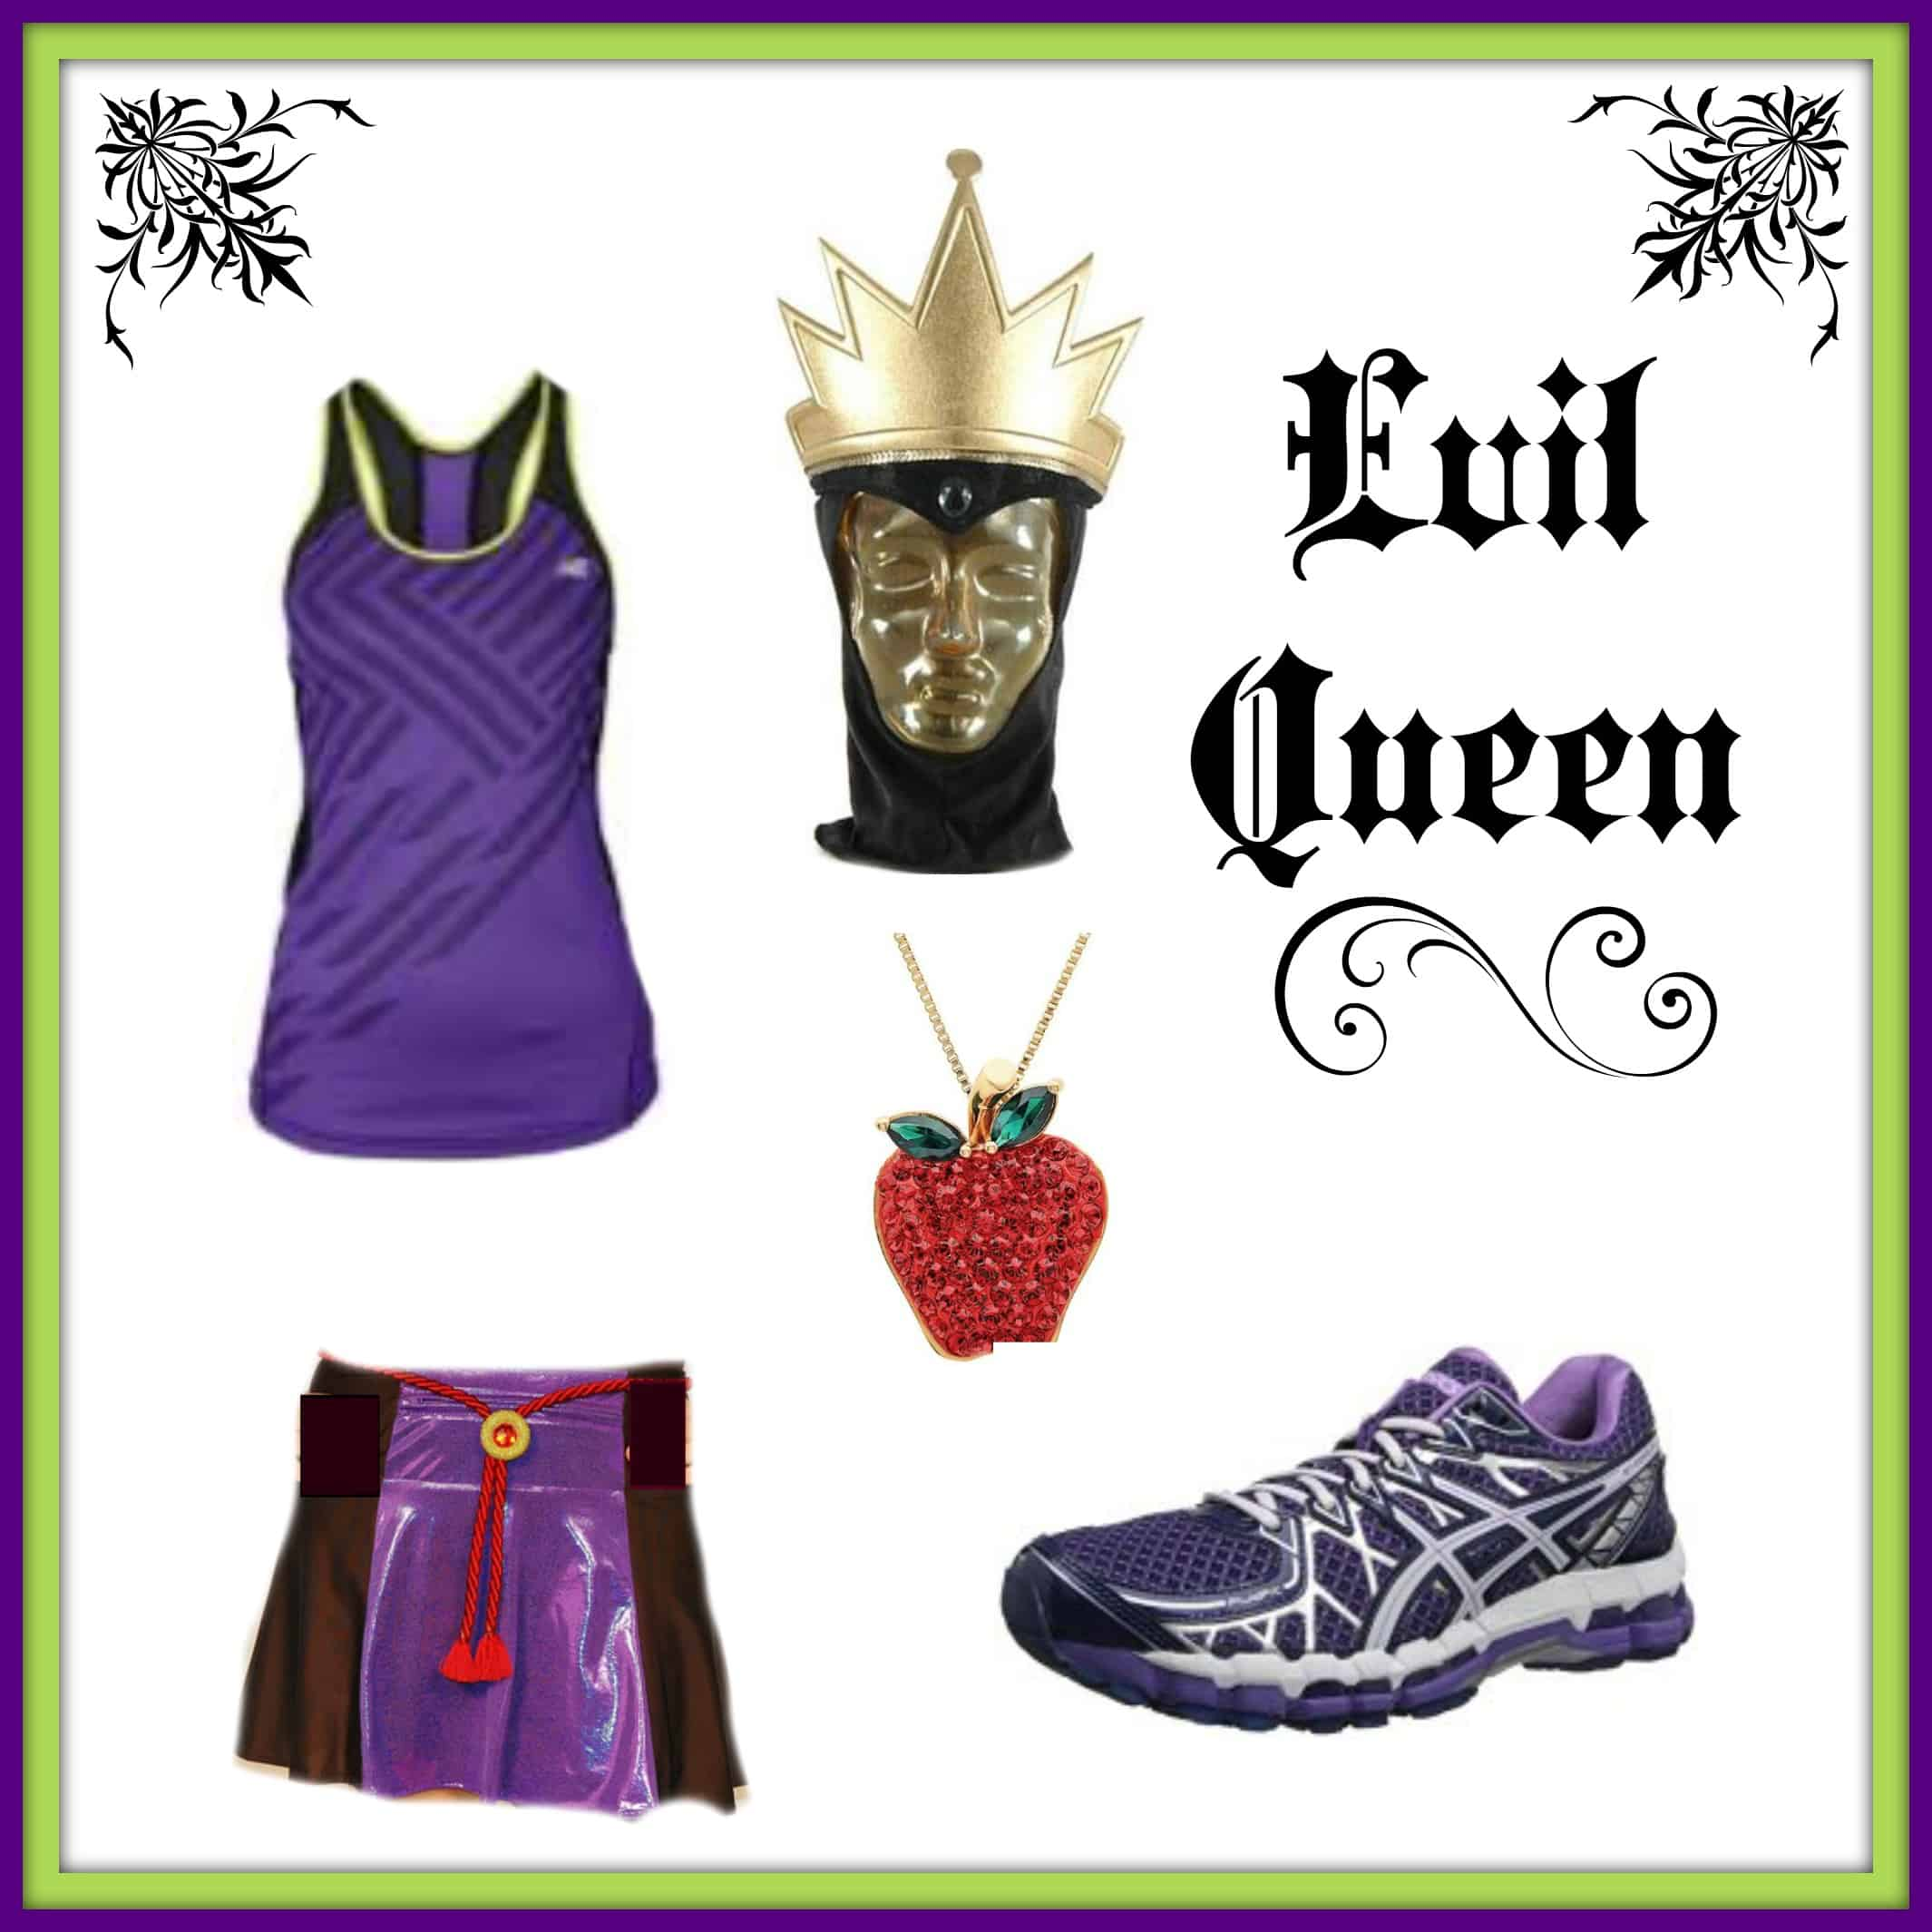 Evil Queen running costume